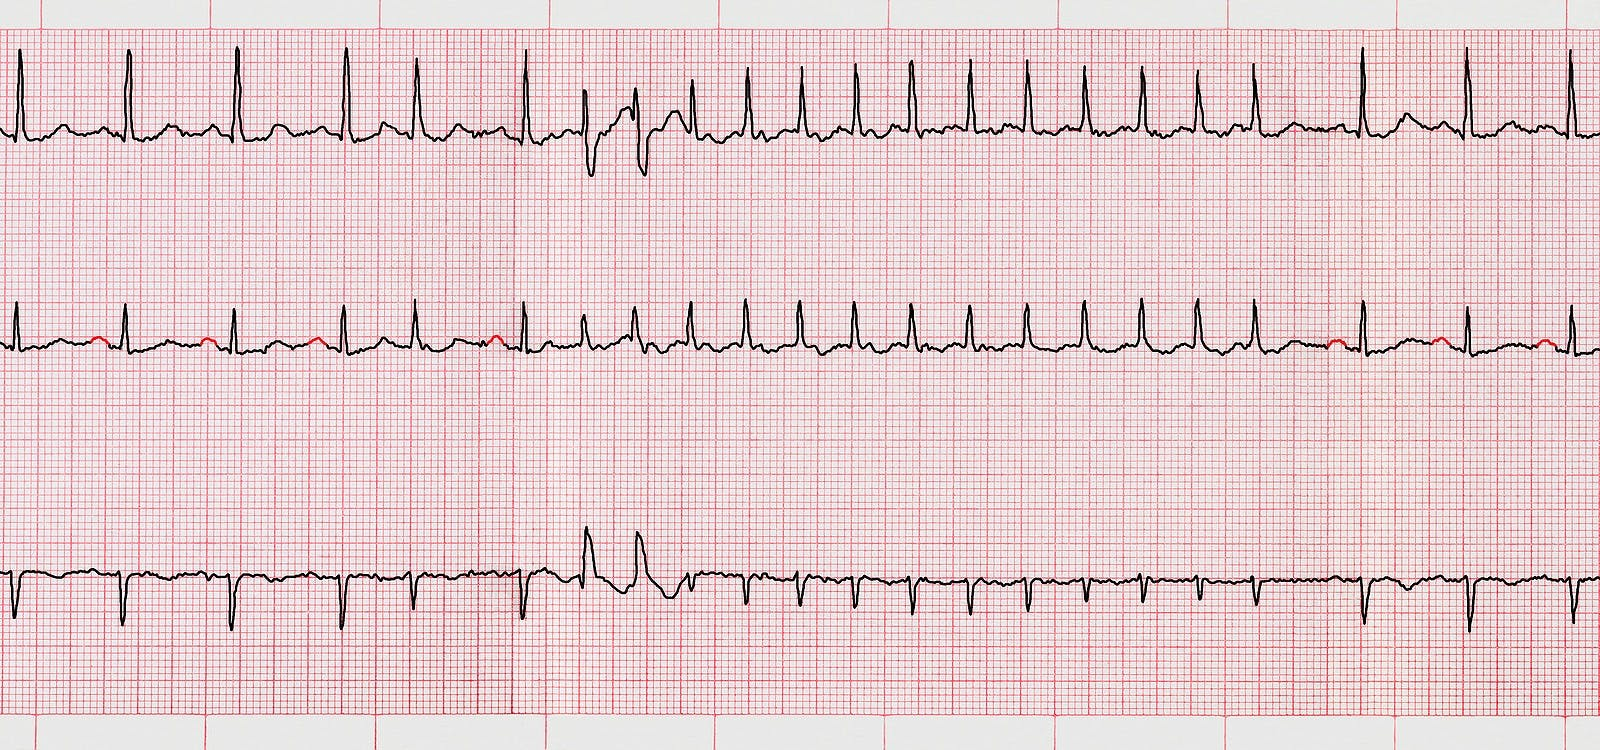 An electrocardiogram with evidence of atrial fibrillation